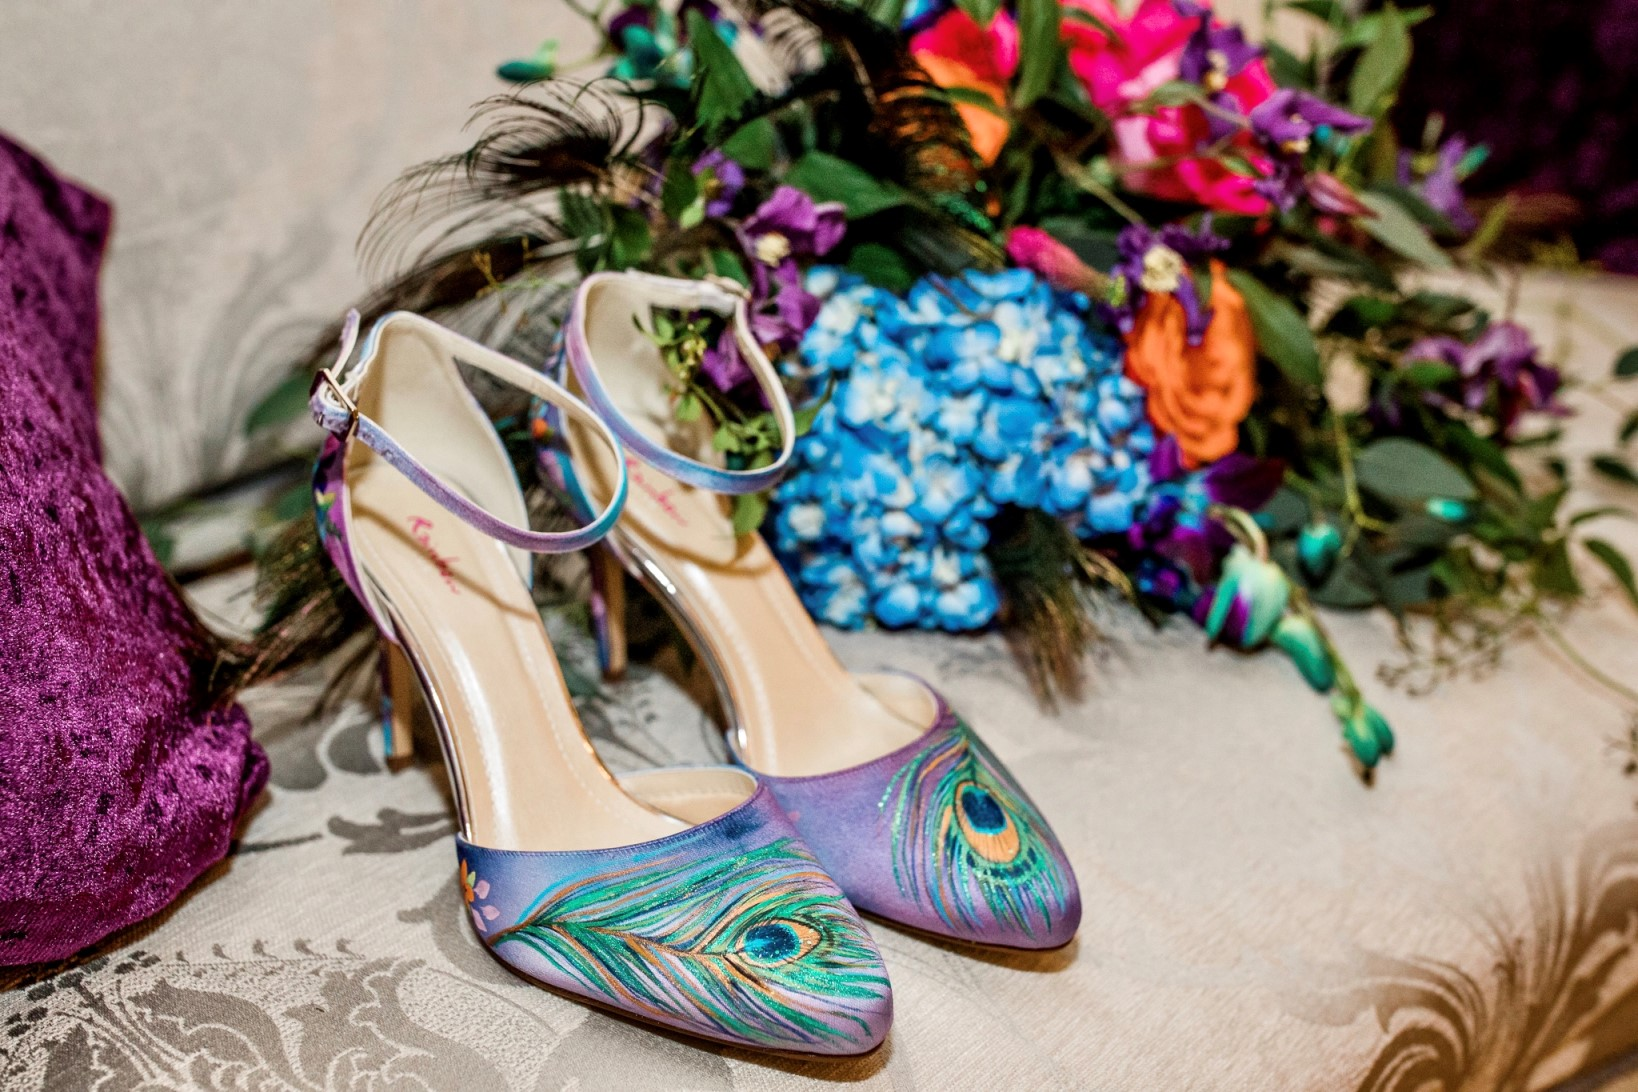 peacock wedding- unconventional wedding- hand painted wedding shoes- peacock wedding shoes- unique bridal shoes